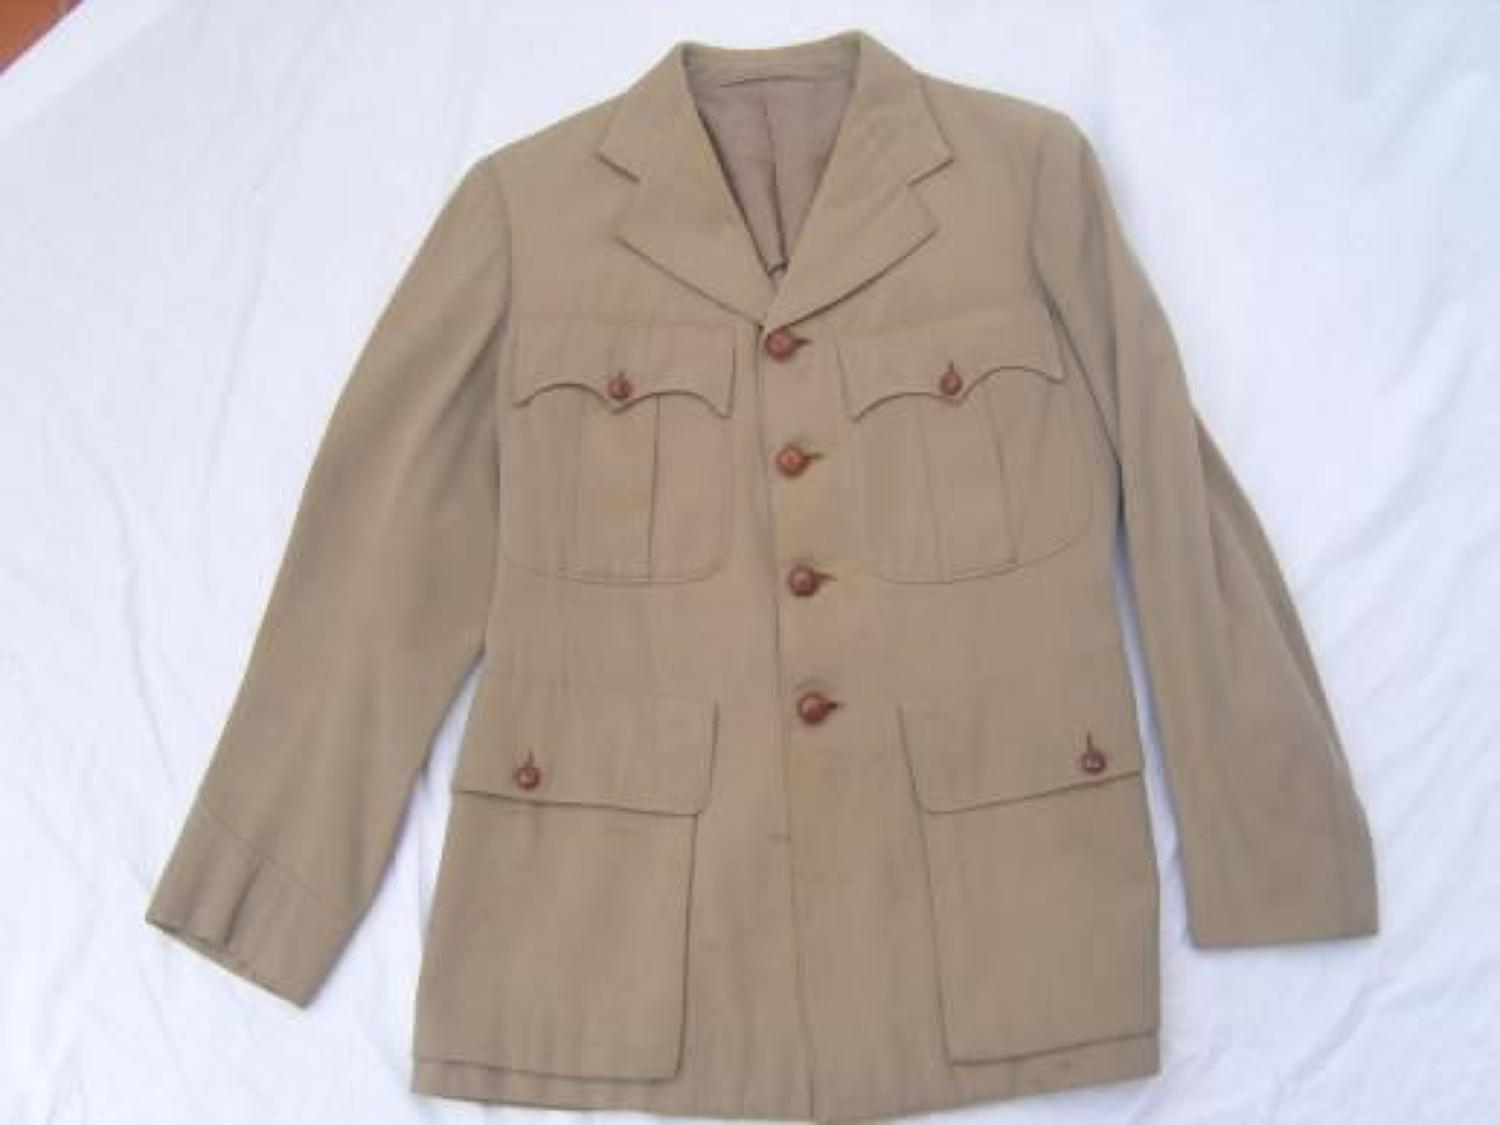 1942 dated Tunic Jacket to Officer in the Indian Army.